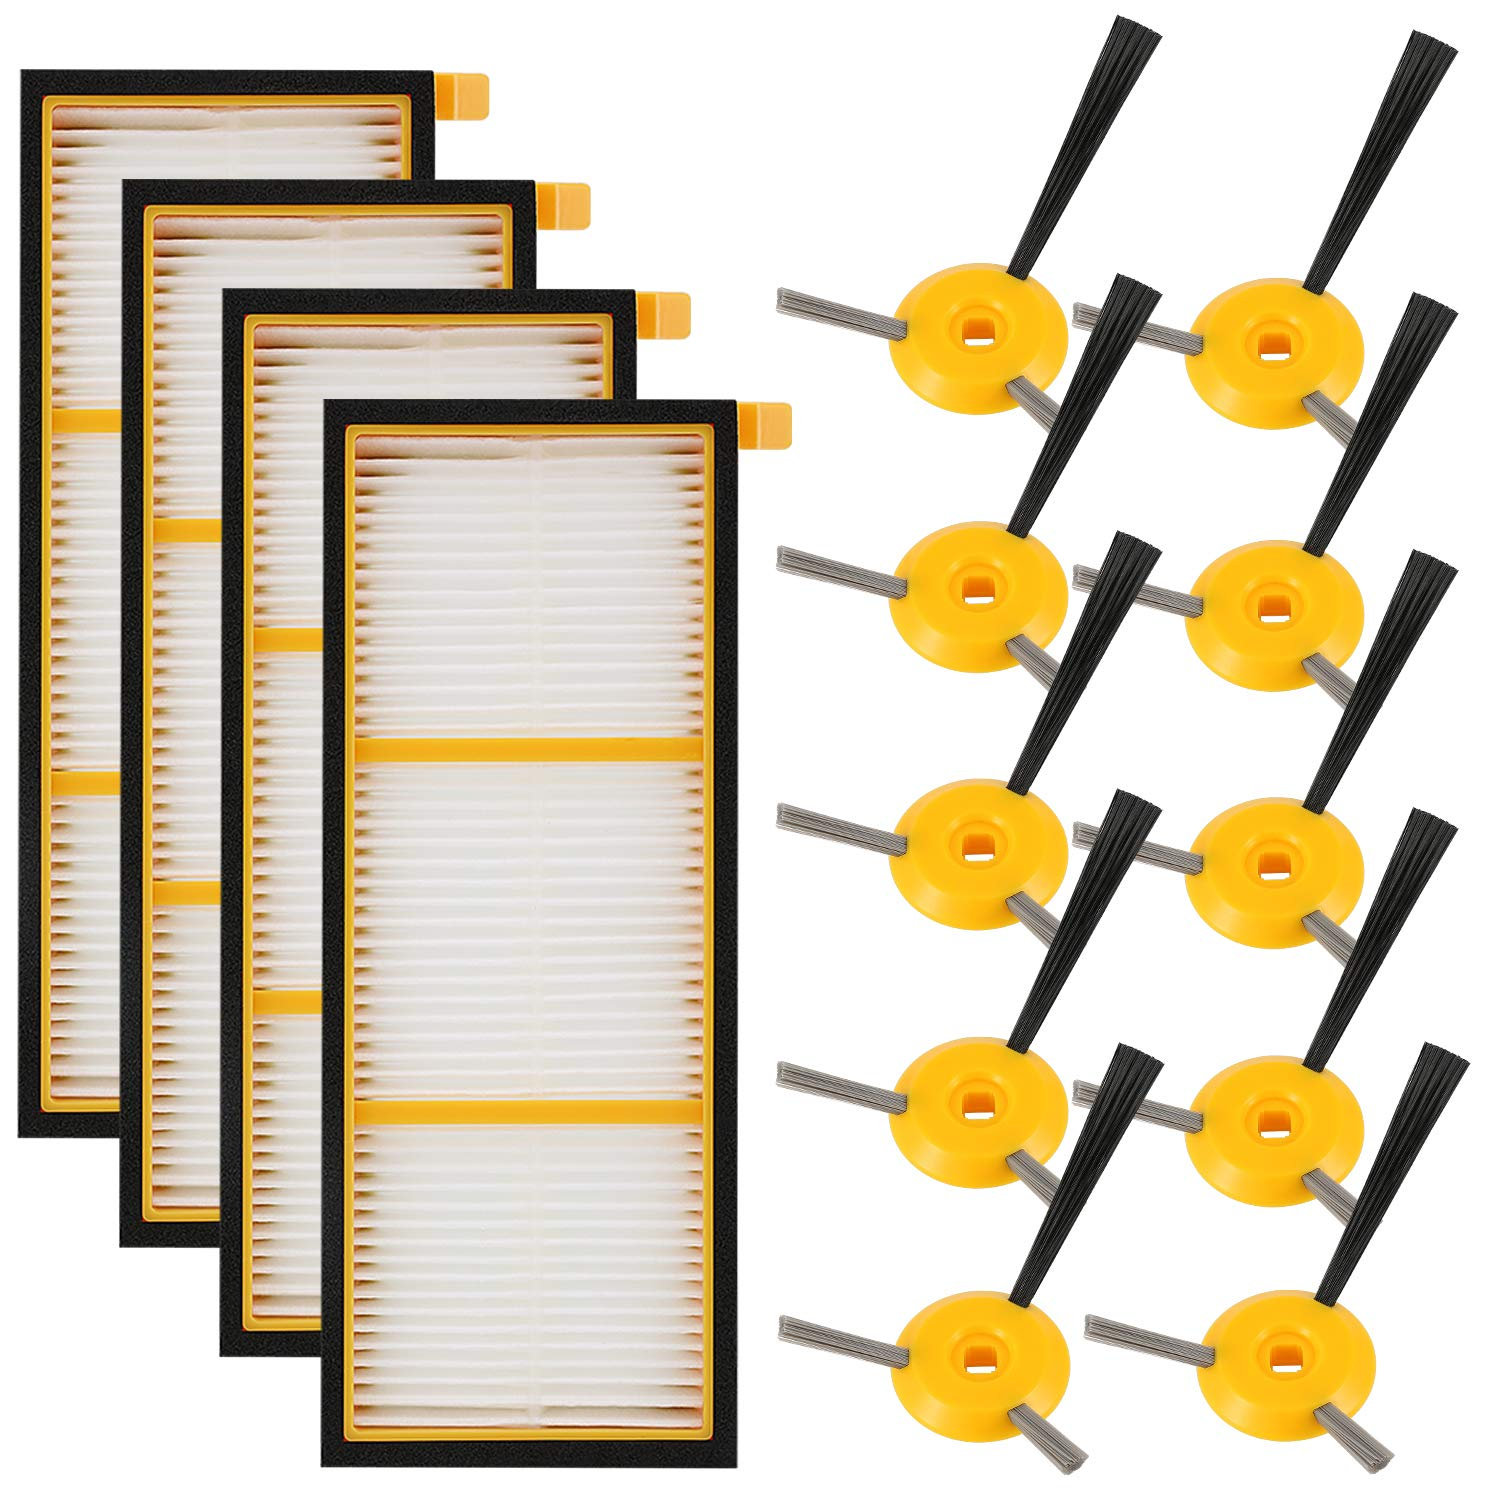 4 Filter + 10 Side Brush 14 Pack Rv720 Rv755 Rv700 Qualified Replenishment Kit Compatible Shark Ion Robot Rv750 Rv750c